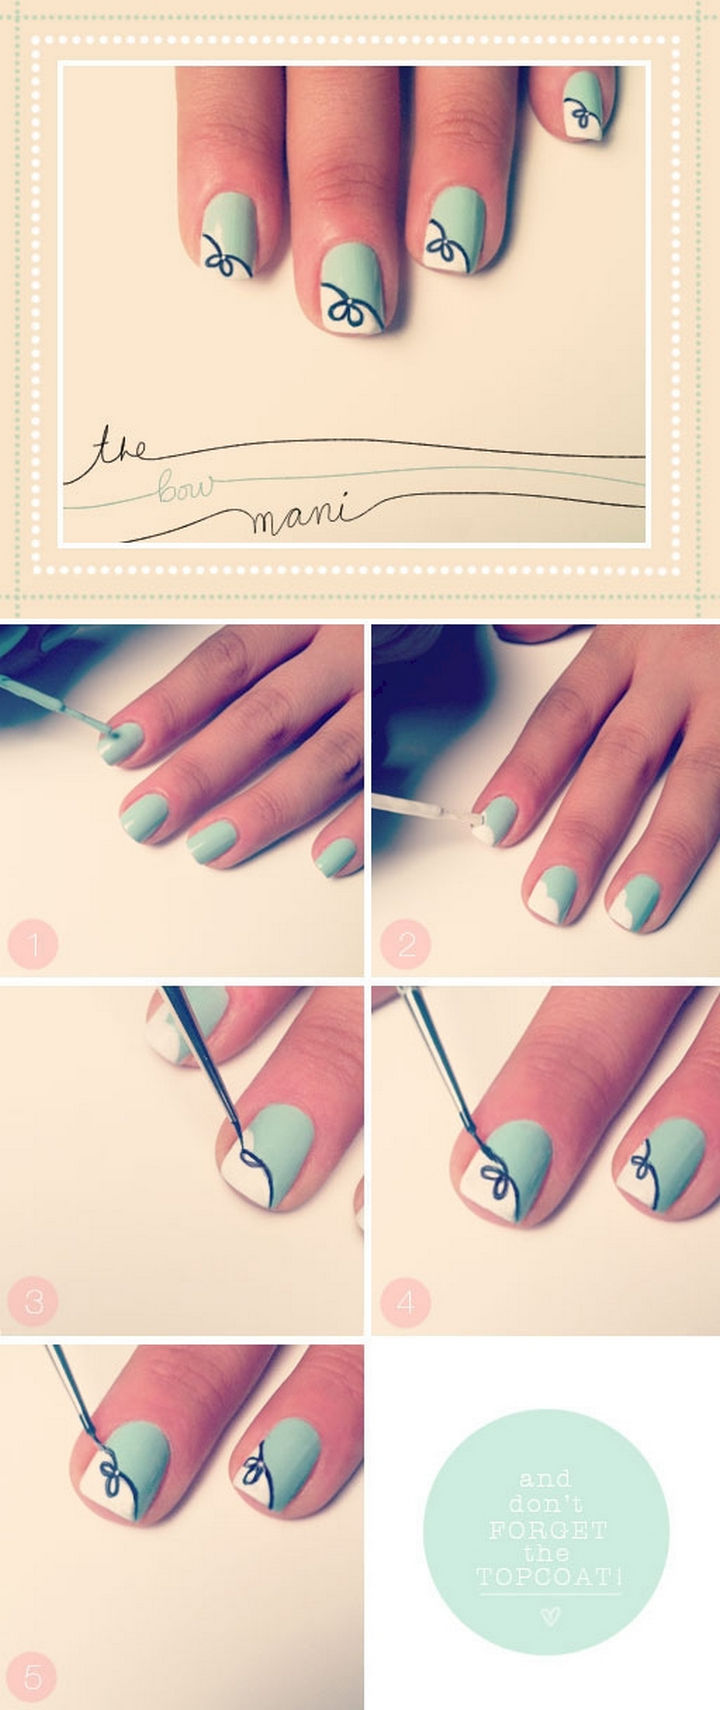 17 Bow Nail Art Designs - Create a pretty mint mani and tie it up with a bow.